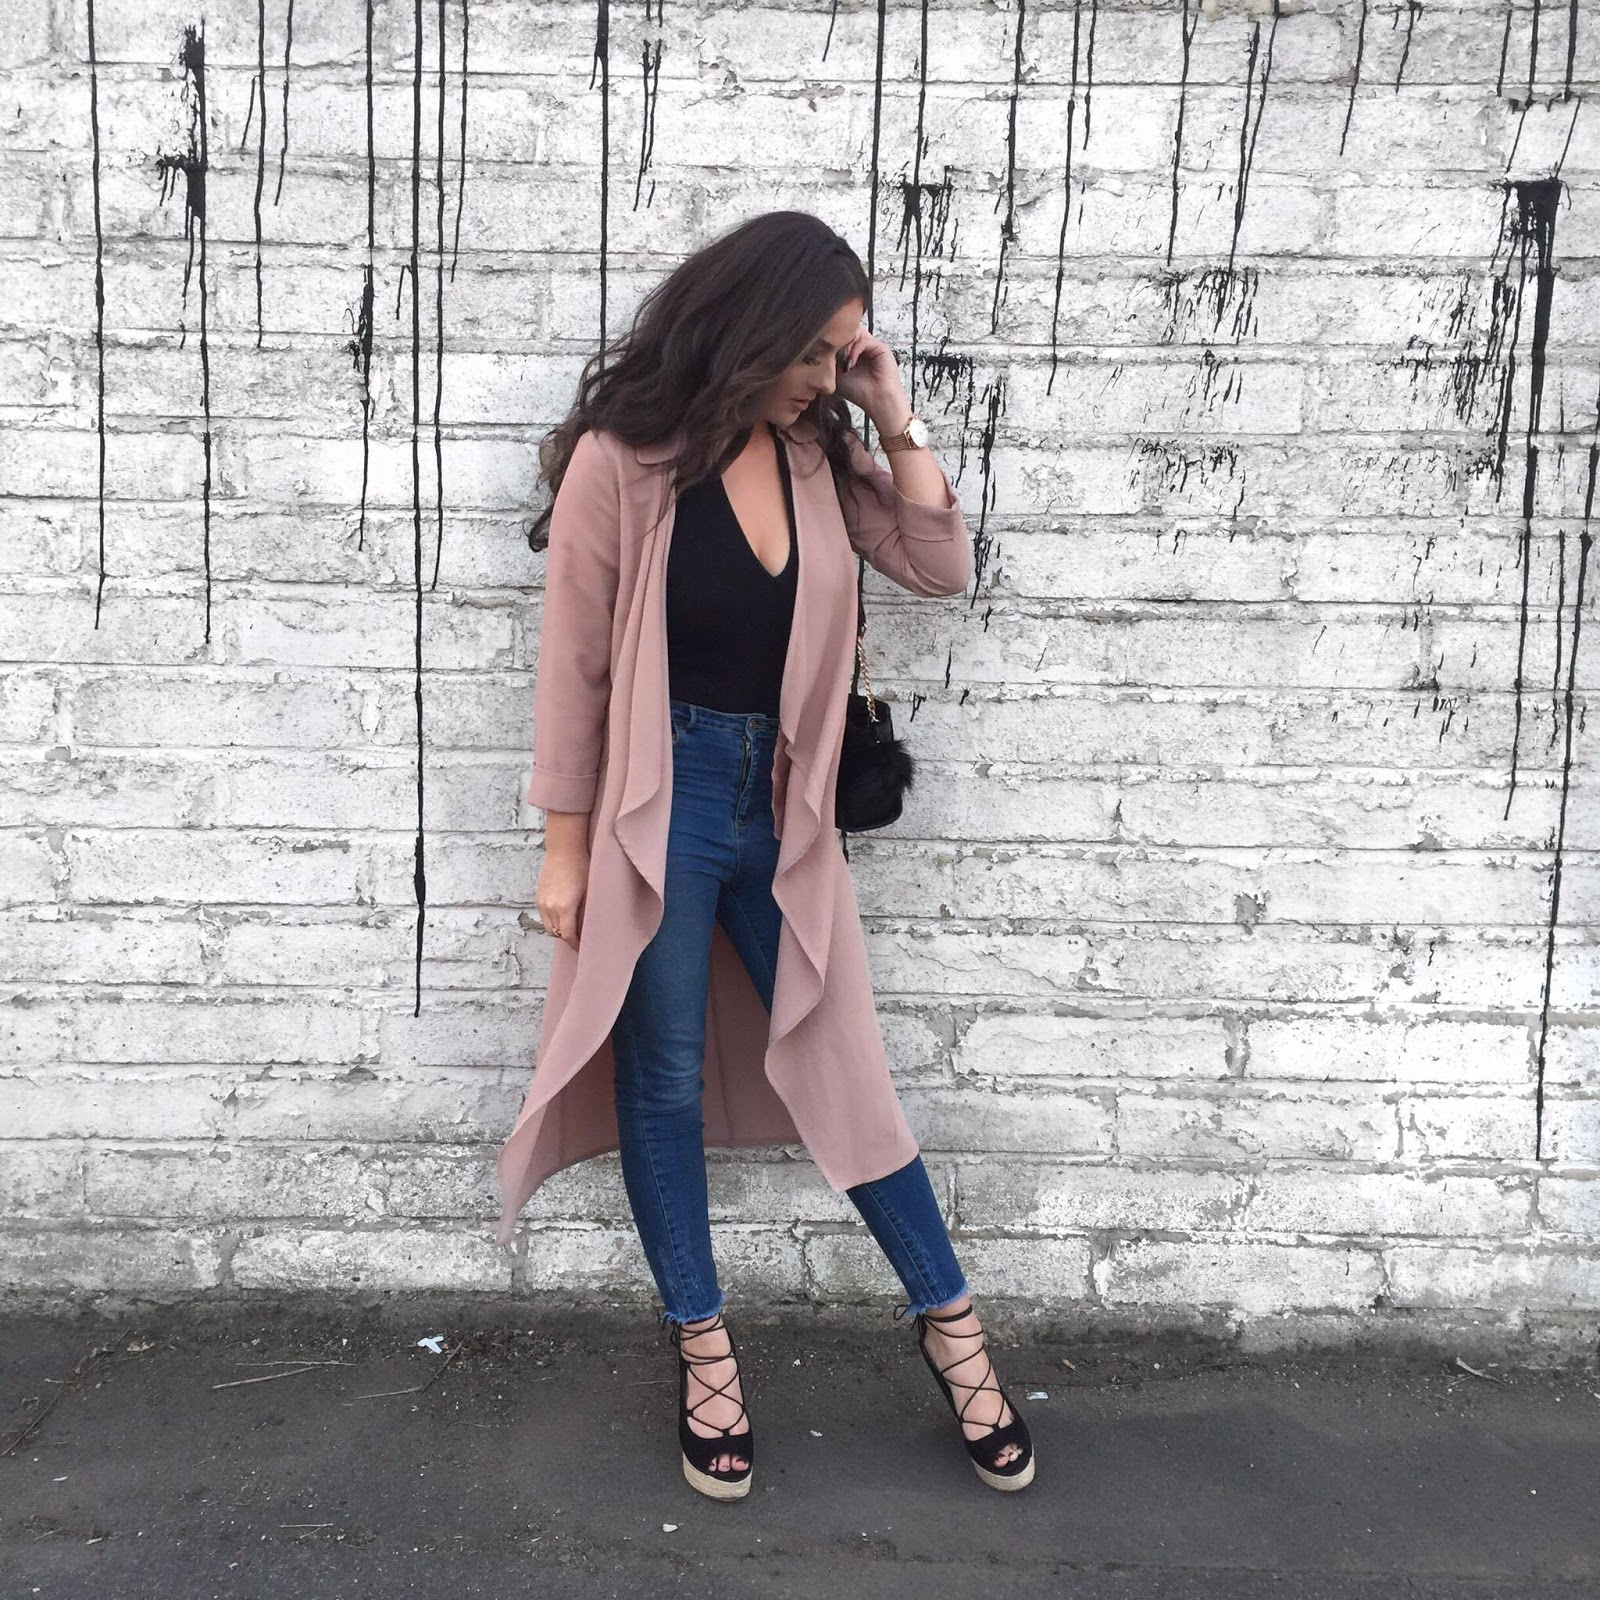 Fashion blogger wearing full primark outfit